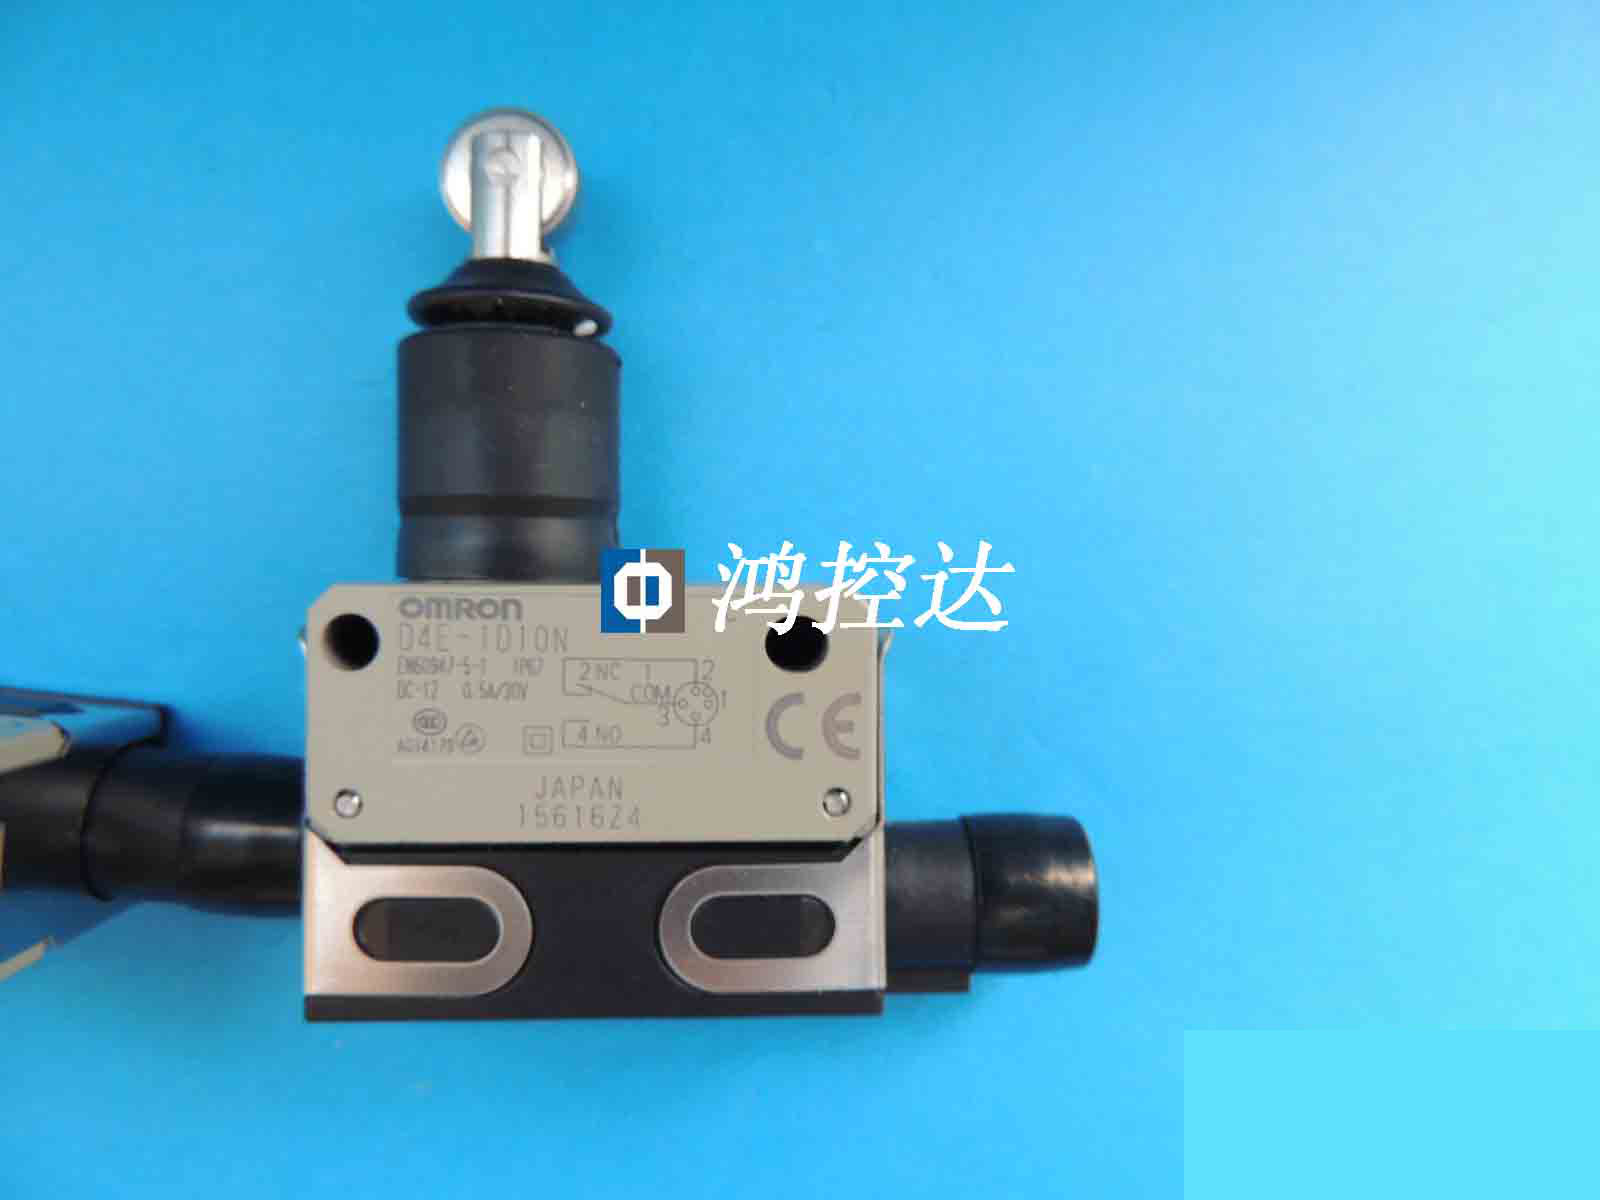 Authentic travel switch D4E-1D10N is guaranteed for one year.Authentic travel switch D4E-1D10N is guaranteed for one year.